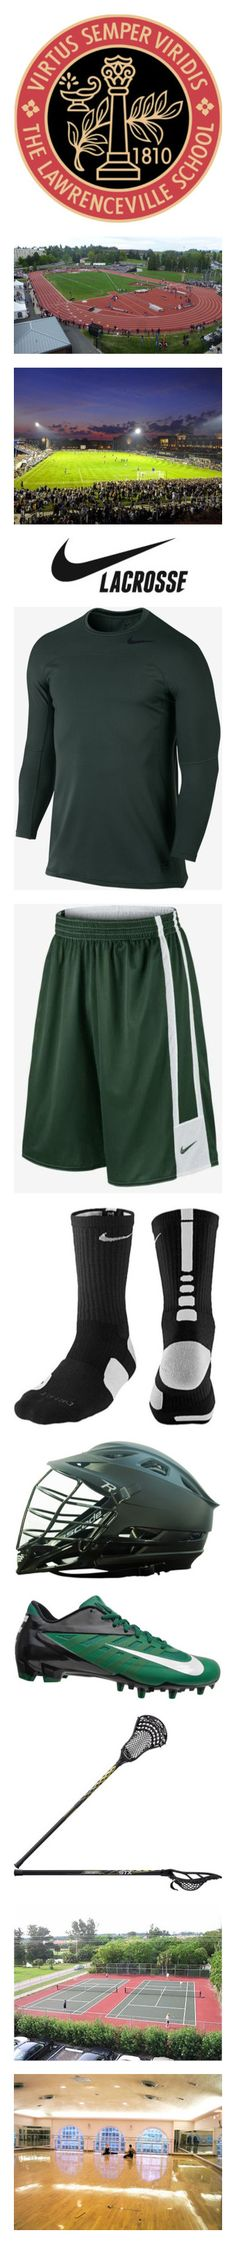 """""""Lawrenceville Sports"""" by w-r3ckingb4ll ❤ liked on Polyvore featuring men's fashion, men's clothing, school, backgrounds, house, pictures, places, rooms, home and men's socks"""